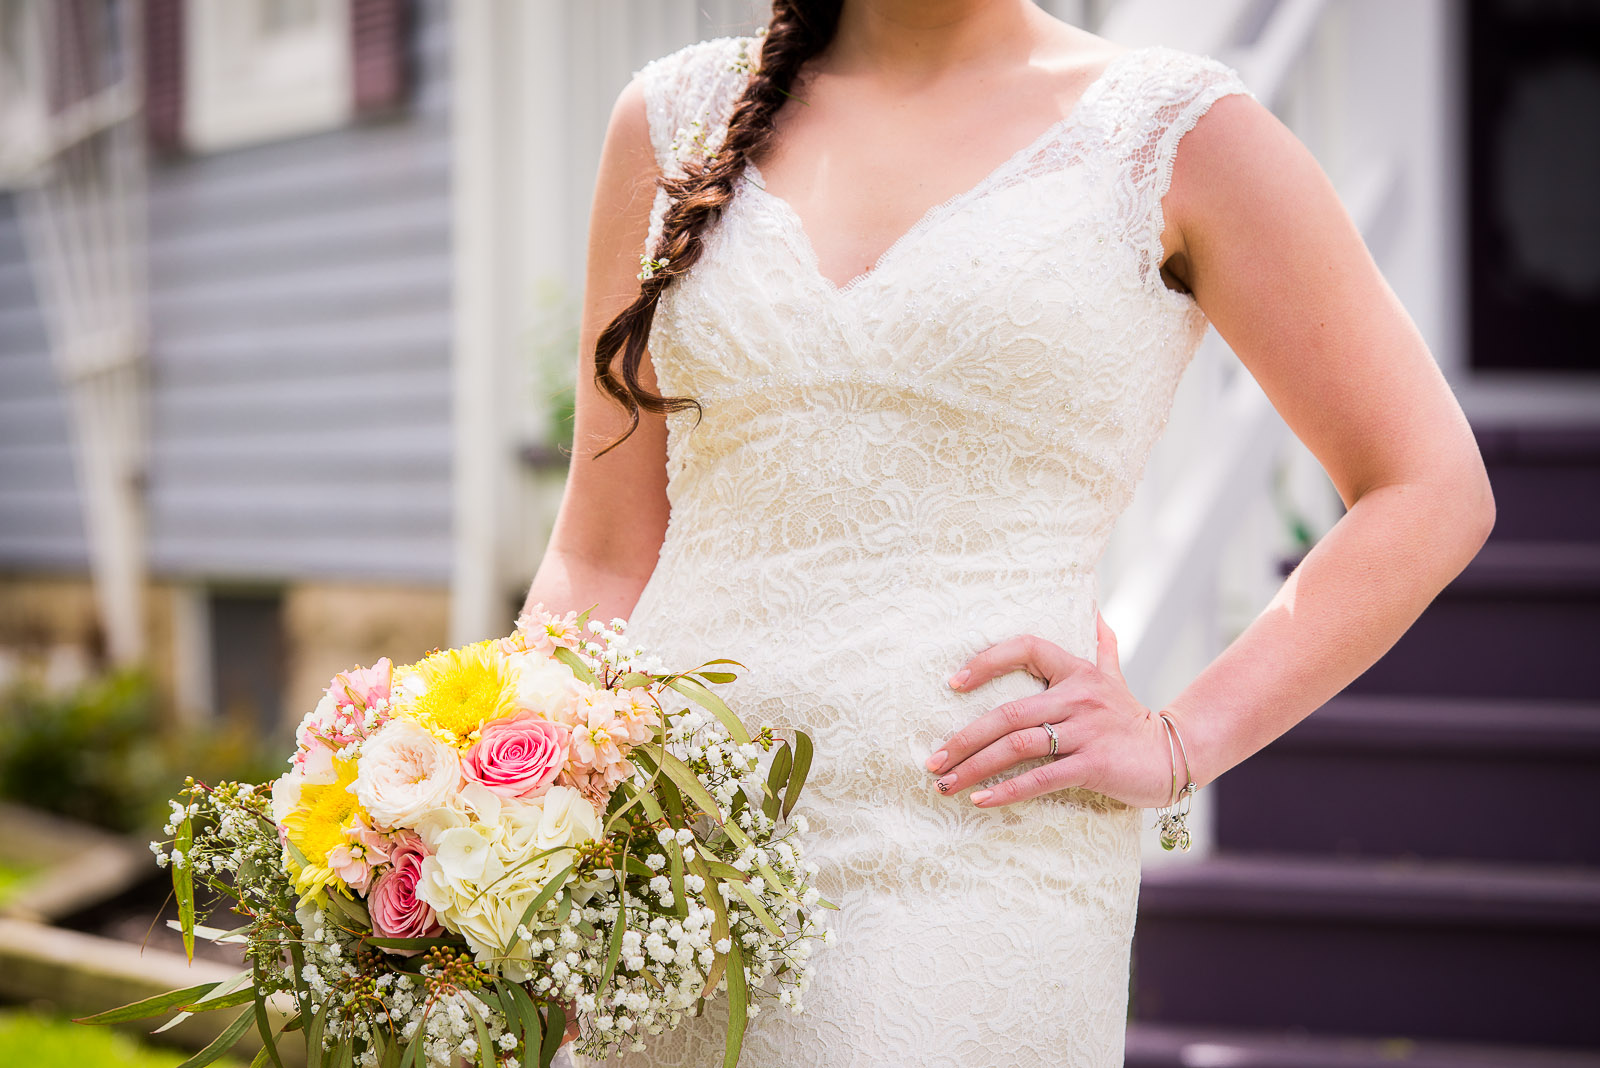 Eric_and_Christy_Photography_Blog_Katie_Travis_Wedding-13